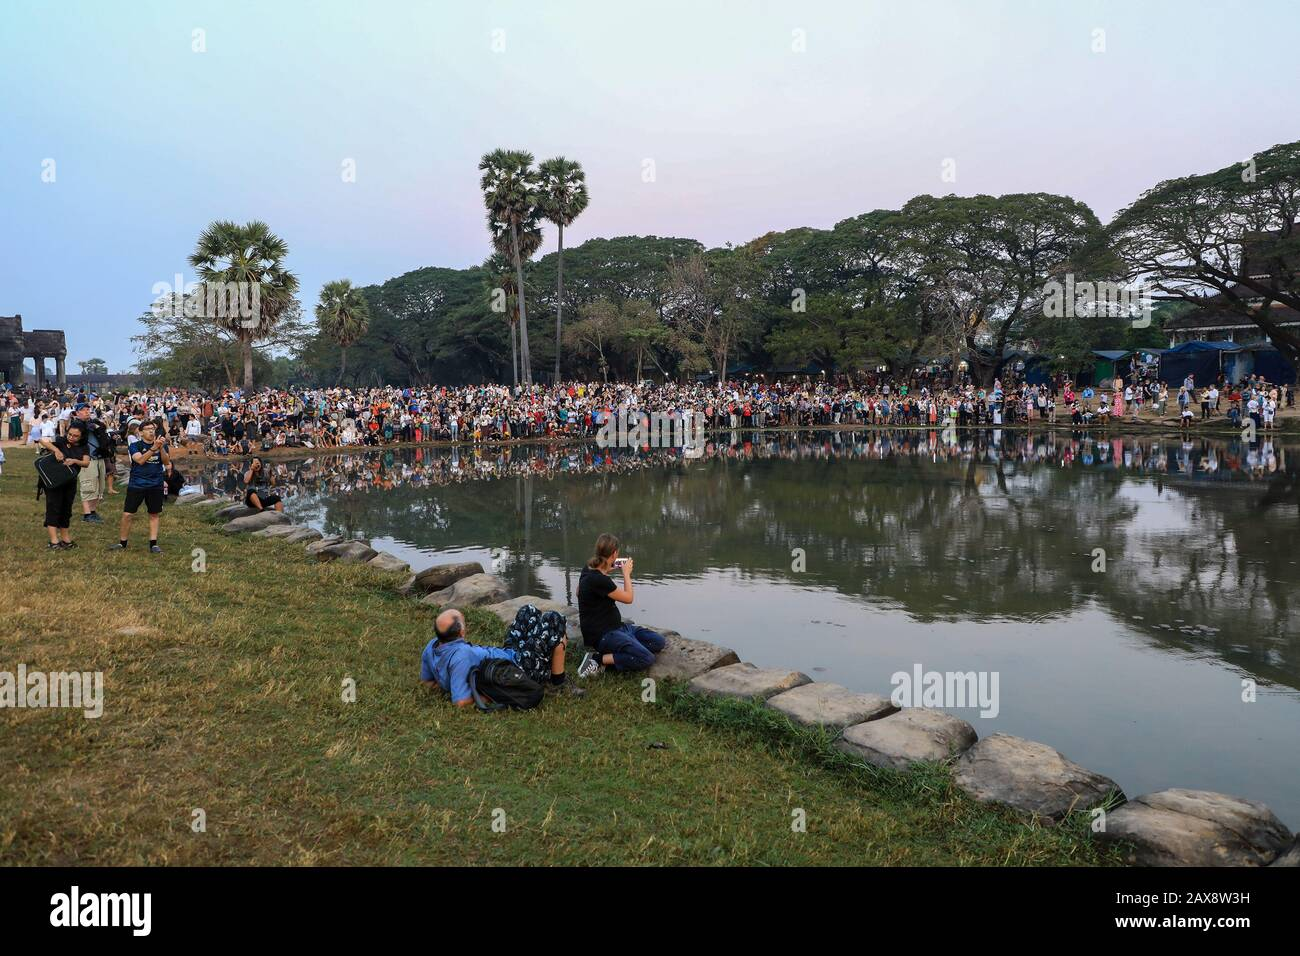 masses-of-tourists-watching-the-sun-rise-over-angkor-wat-cambodia-asia-2AX8W3H.jpg